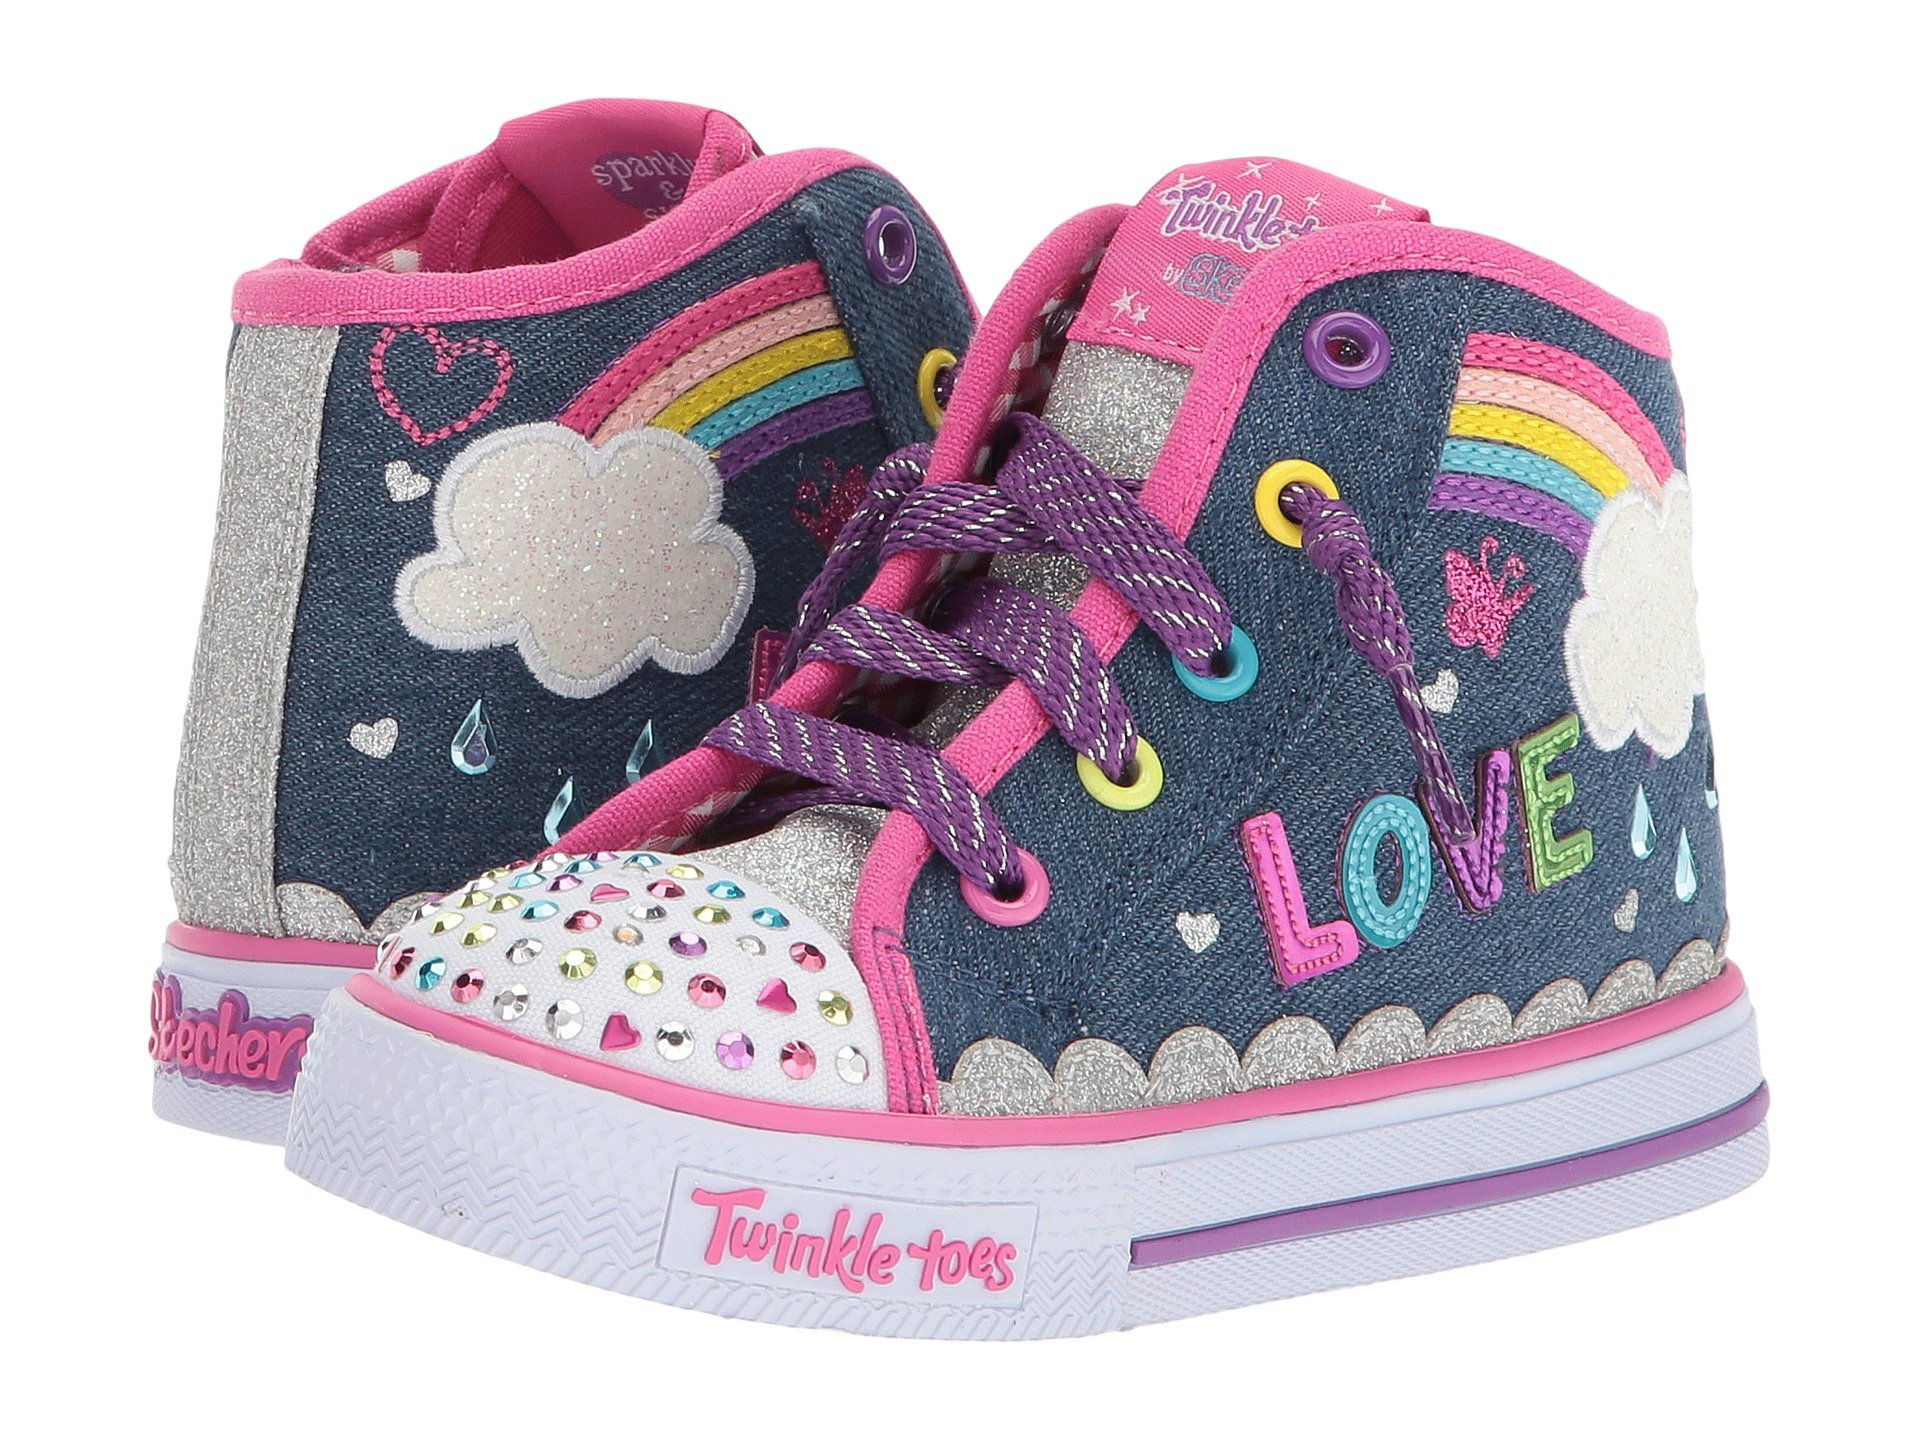 sketchers toddler girls. skechers kids - shuffles sparkle skies 10874n lights (toddler/little kid) sketchers toddler girls